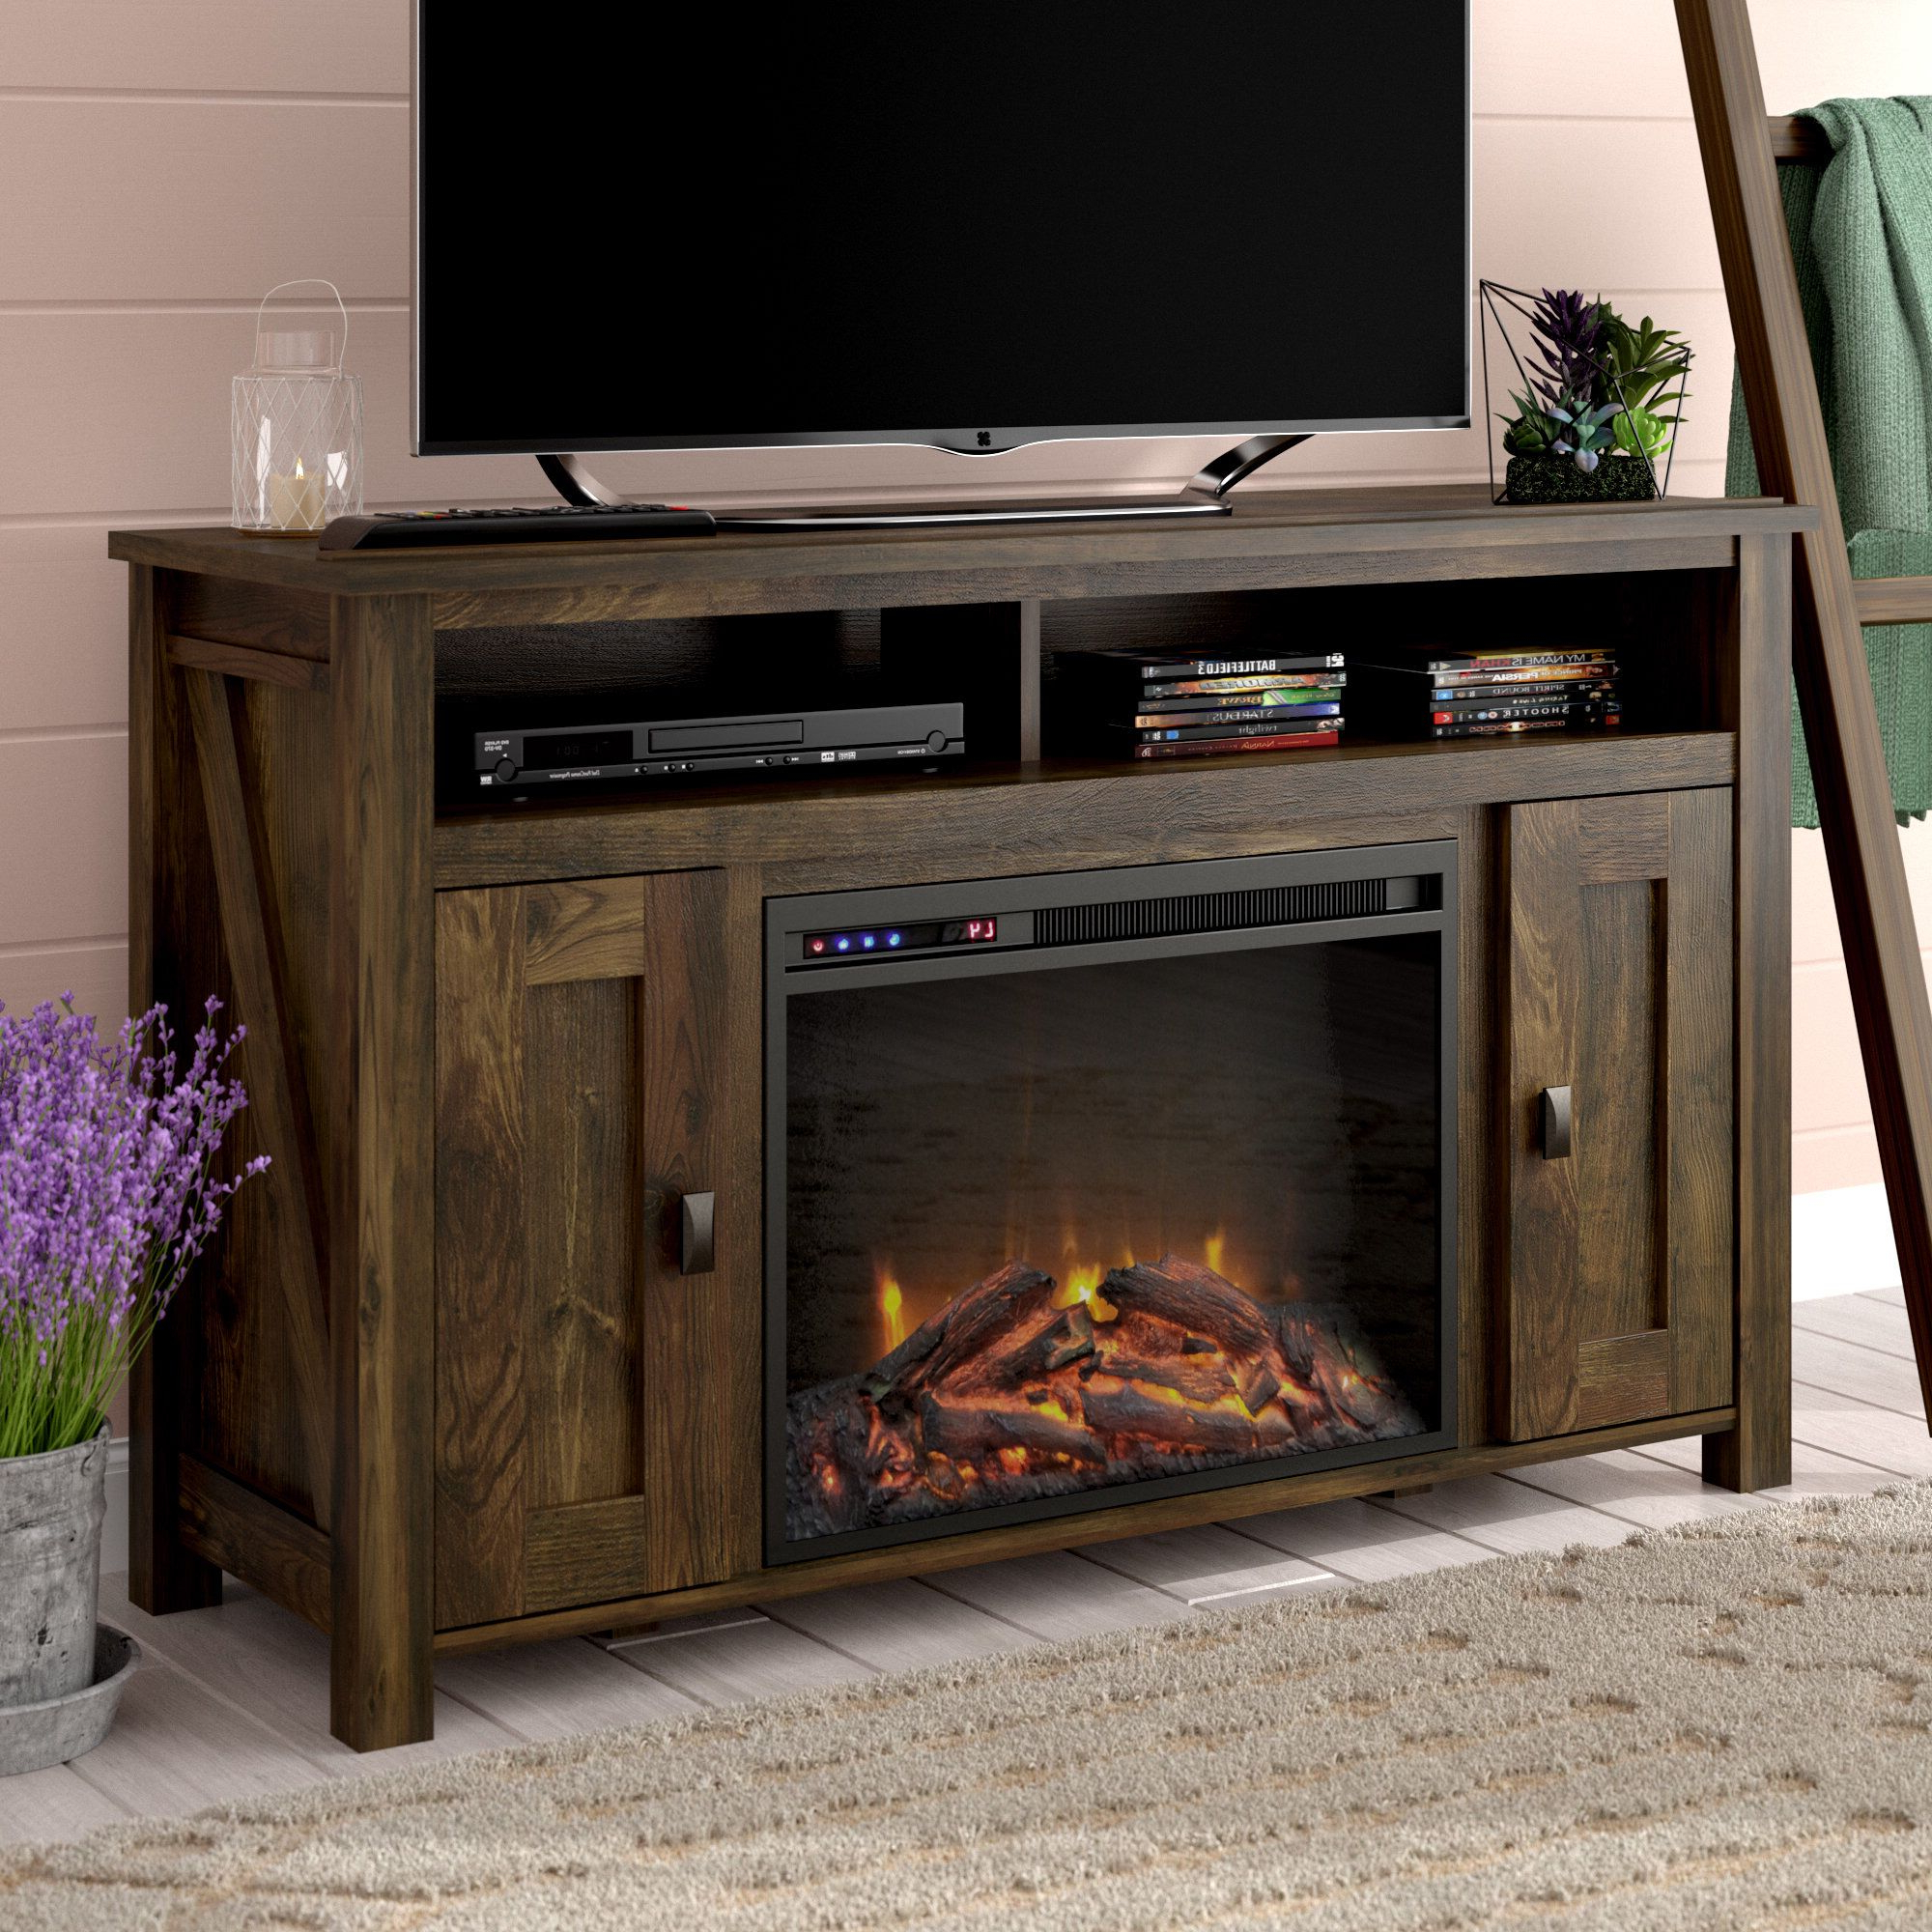 """Whittier Tv Stand For Tvs Up To 50"""" With Electric With Preferred Allegra Tv Stands For Tvs Up To 50"""" (View 15 of 25)"""